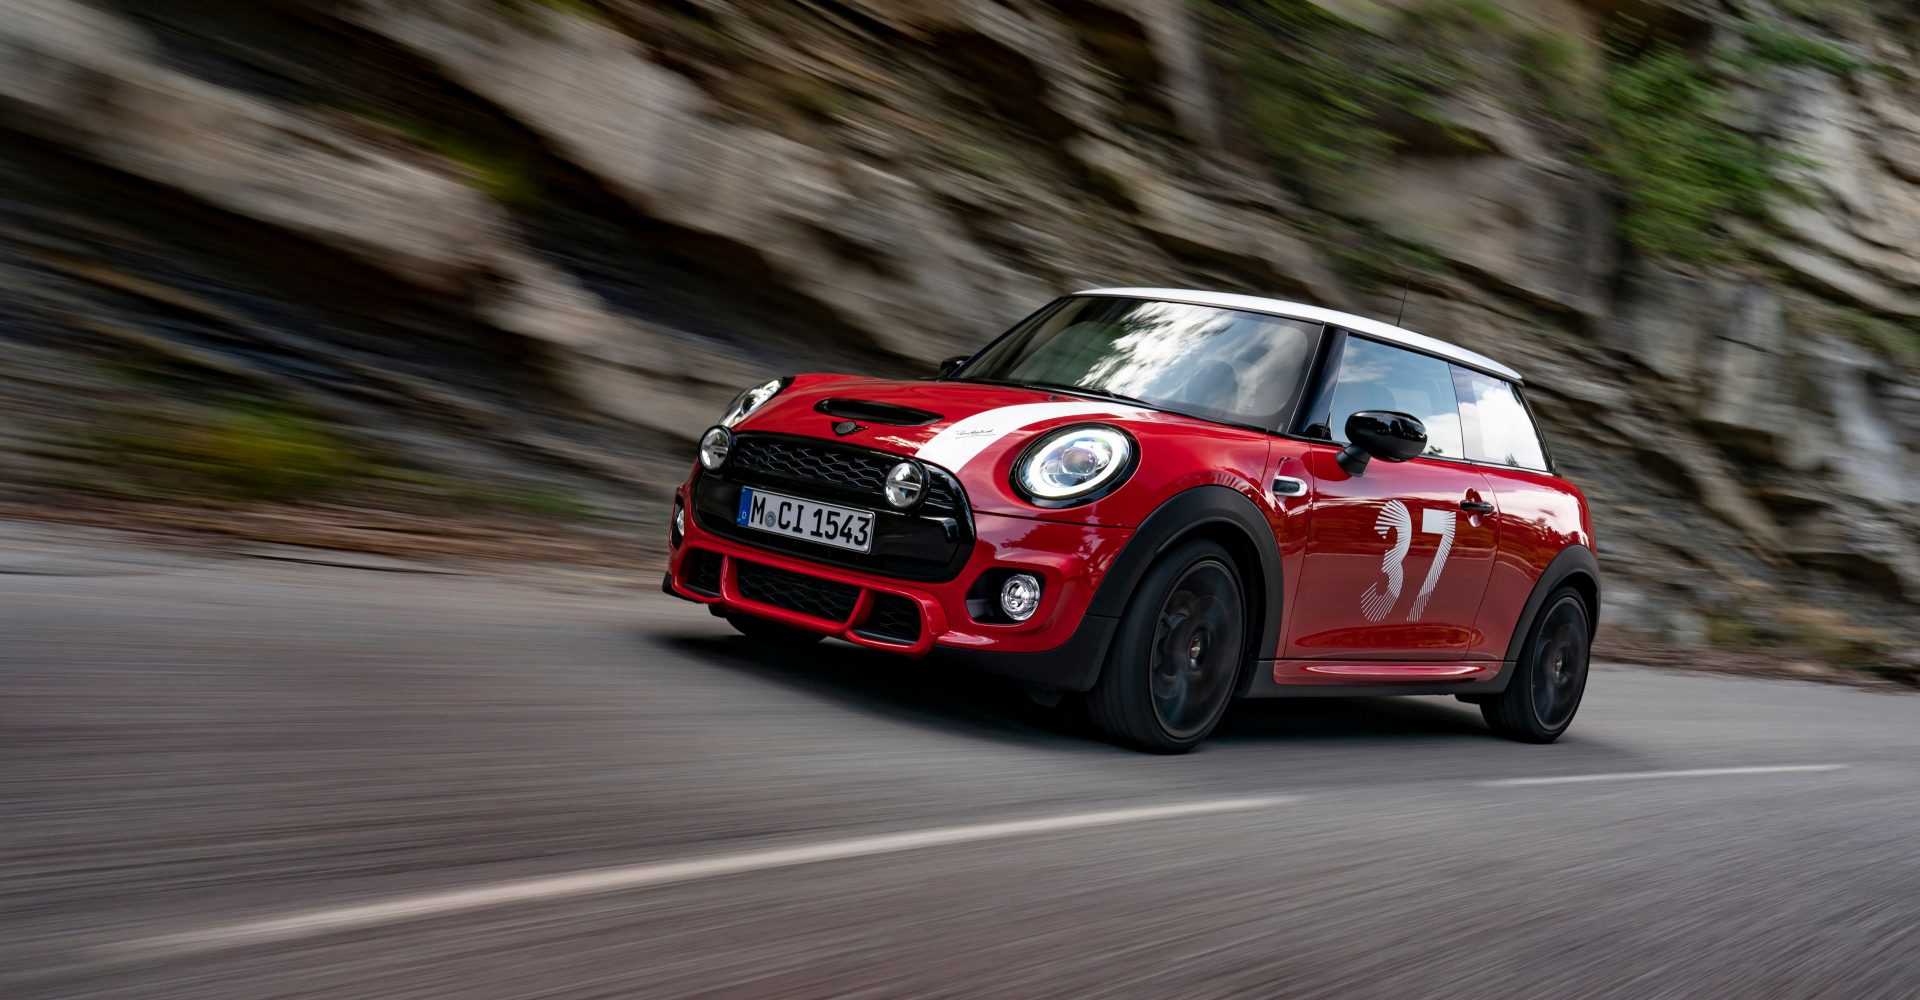 Mini launches special edition model inspired by iconic Monte Carlo Rally win